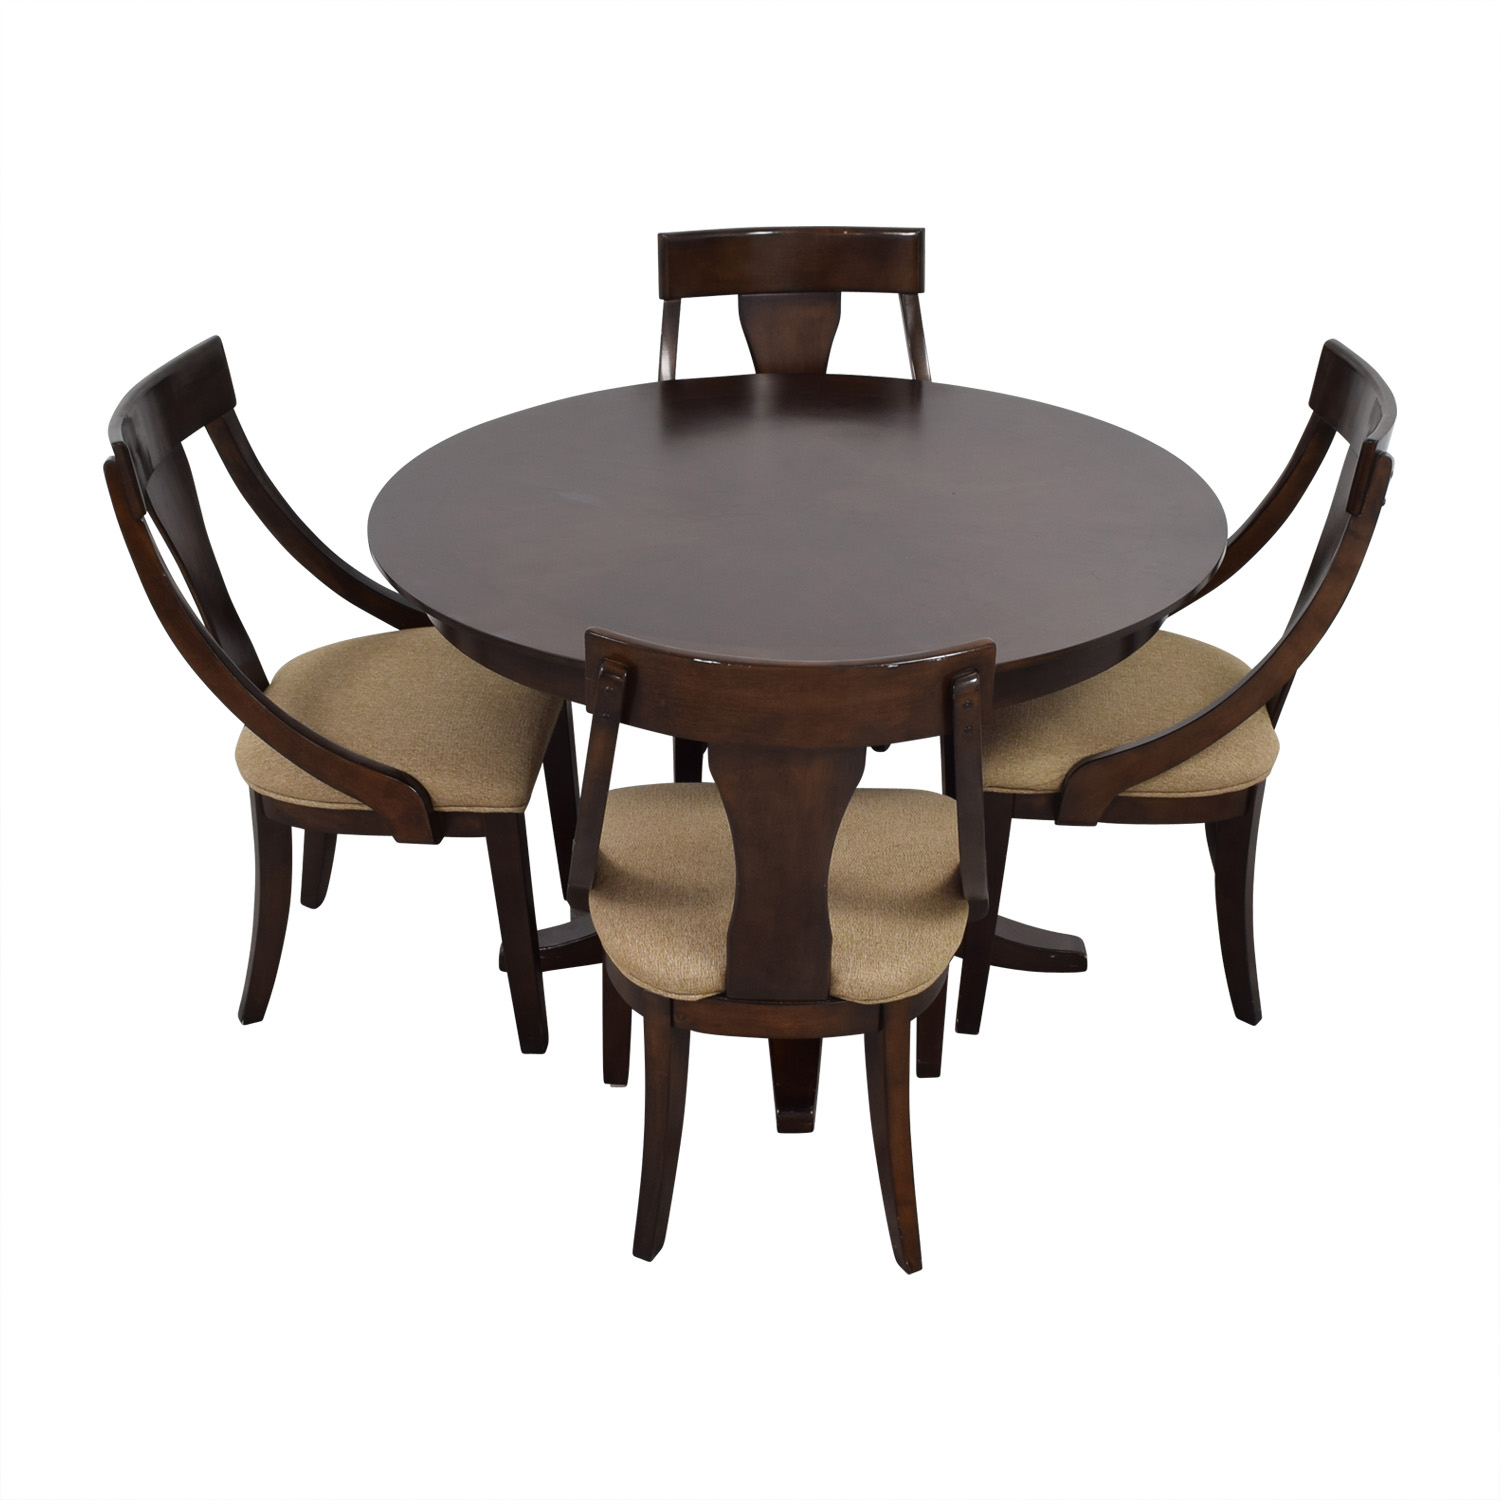 Whalen Furniture Whalen Furniture Wood Dining Set